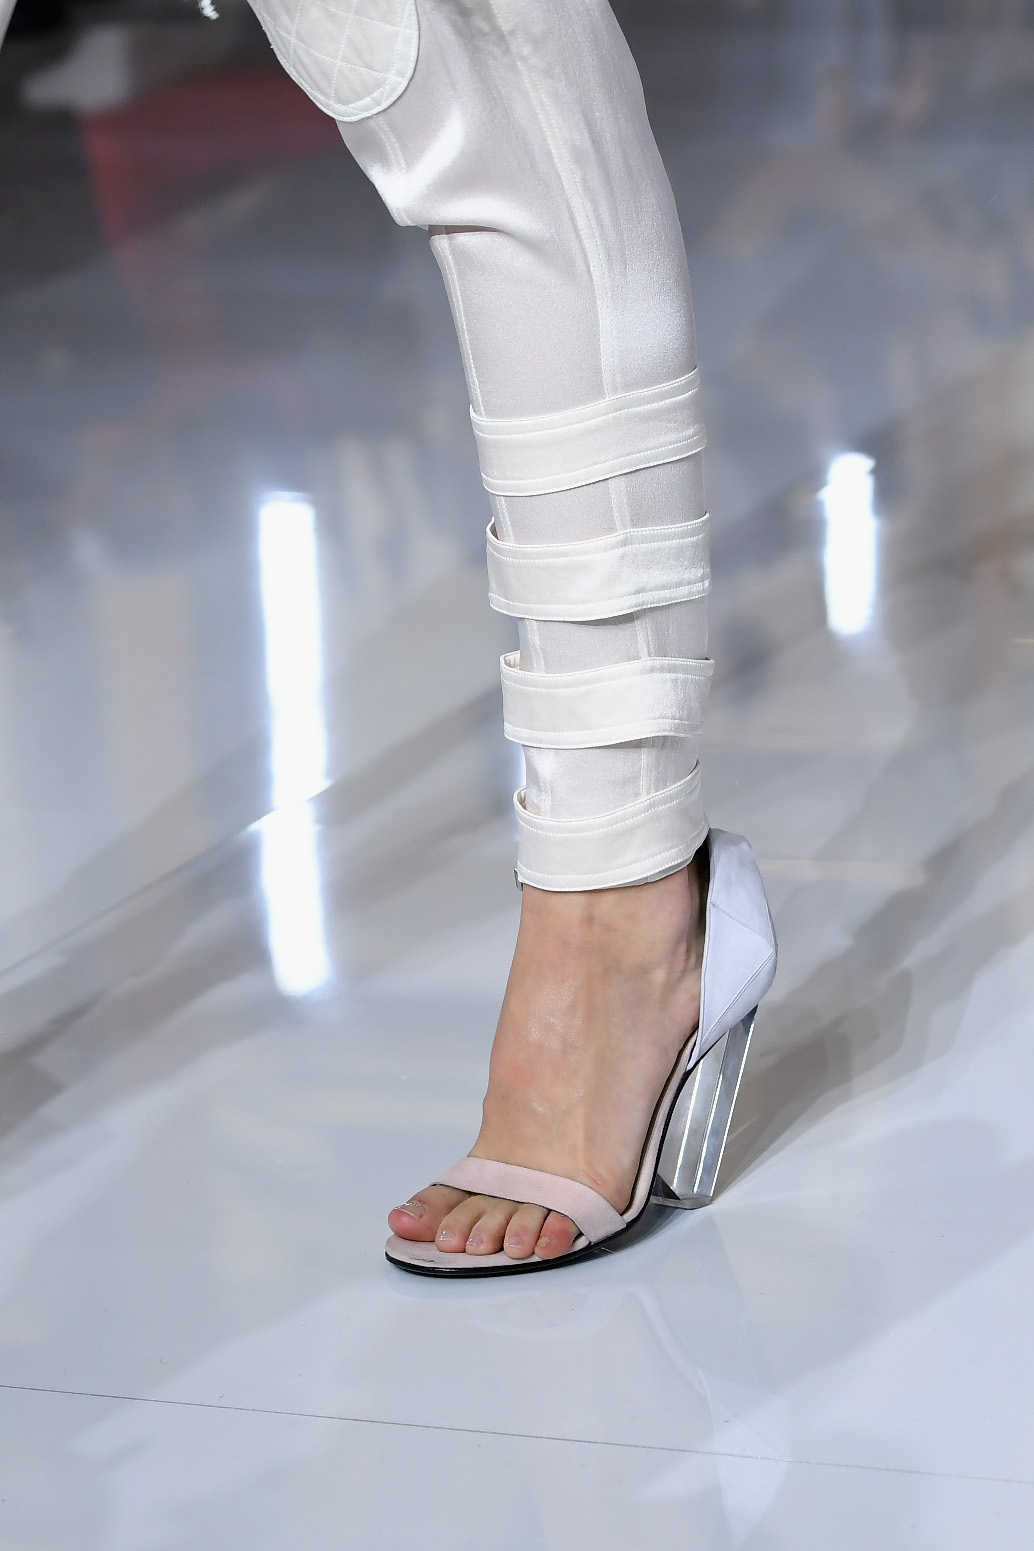 PARIS, FRANCE - SEPTEMBER 28:  A model, shoe detail, walks the runway during the Balmain show as part of the Paris Fashion Week Womenswear Spring/Summer 2019 on September 28, 2018 in Paris, France.  (Photo by Pascal Le Segretain/Getty Images)